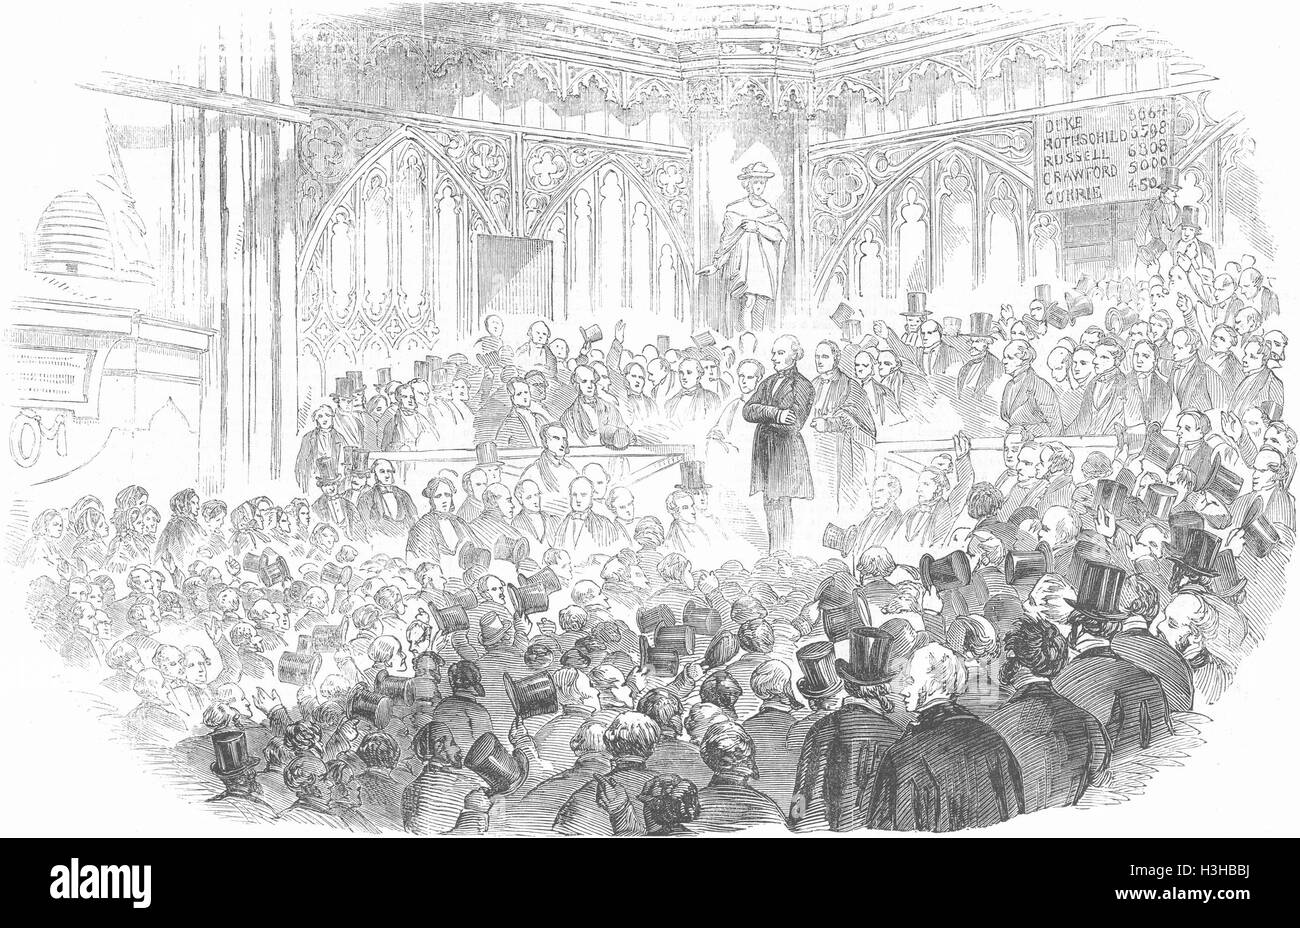 LONDON City election, Guildhall Lord John Russell 1857. Illustrated London News - Stock Image